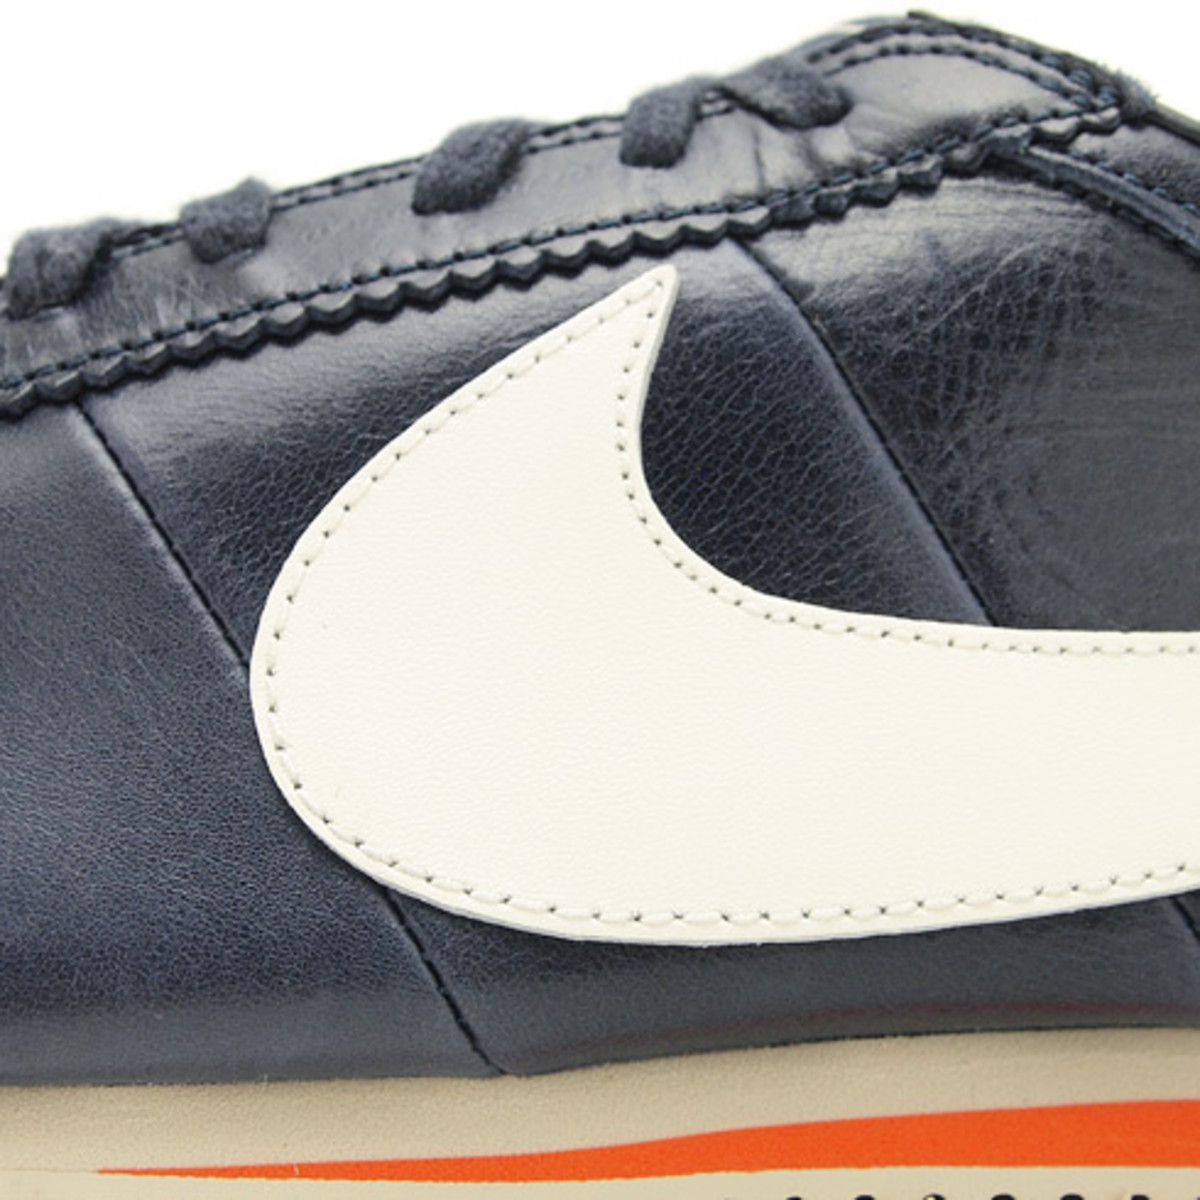 nike-cortez-classic-og-leather-05